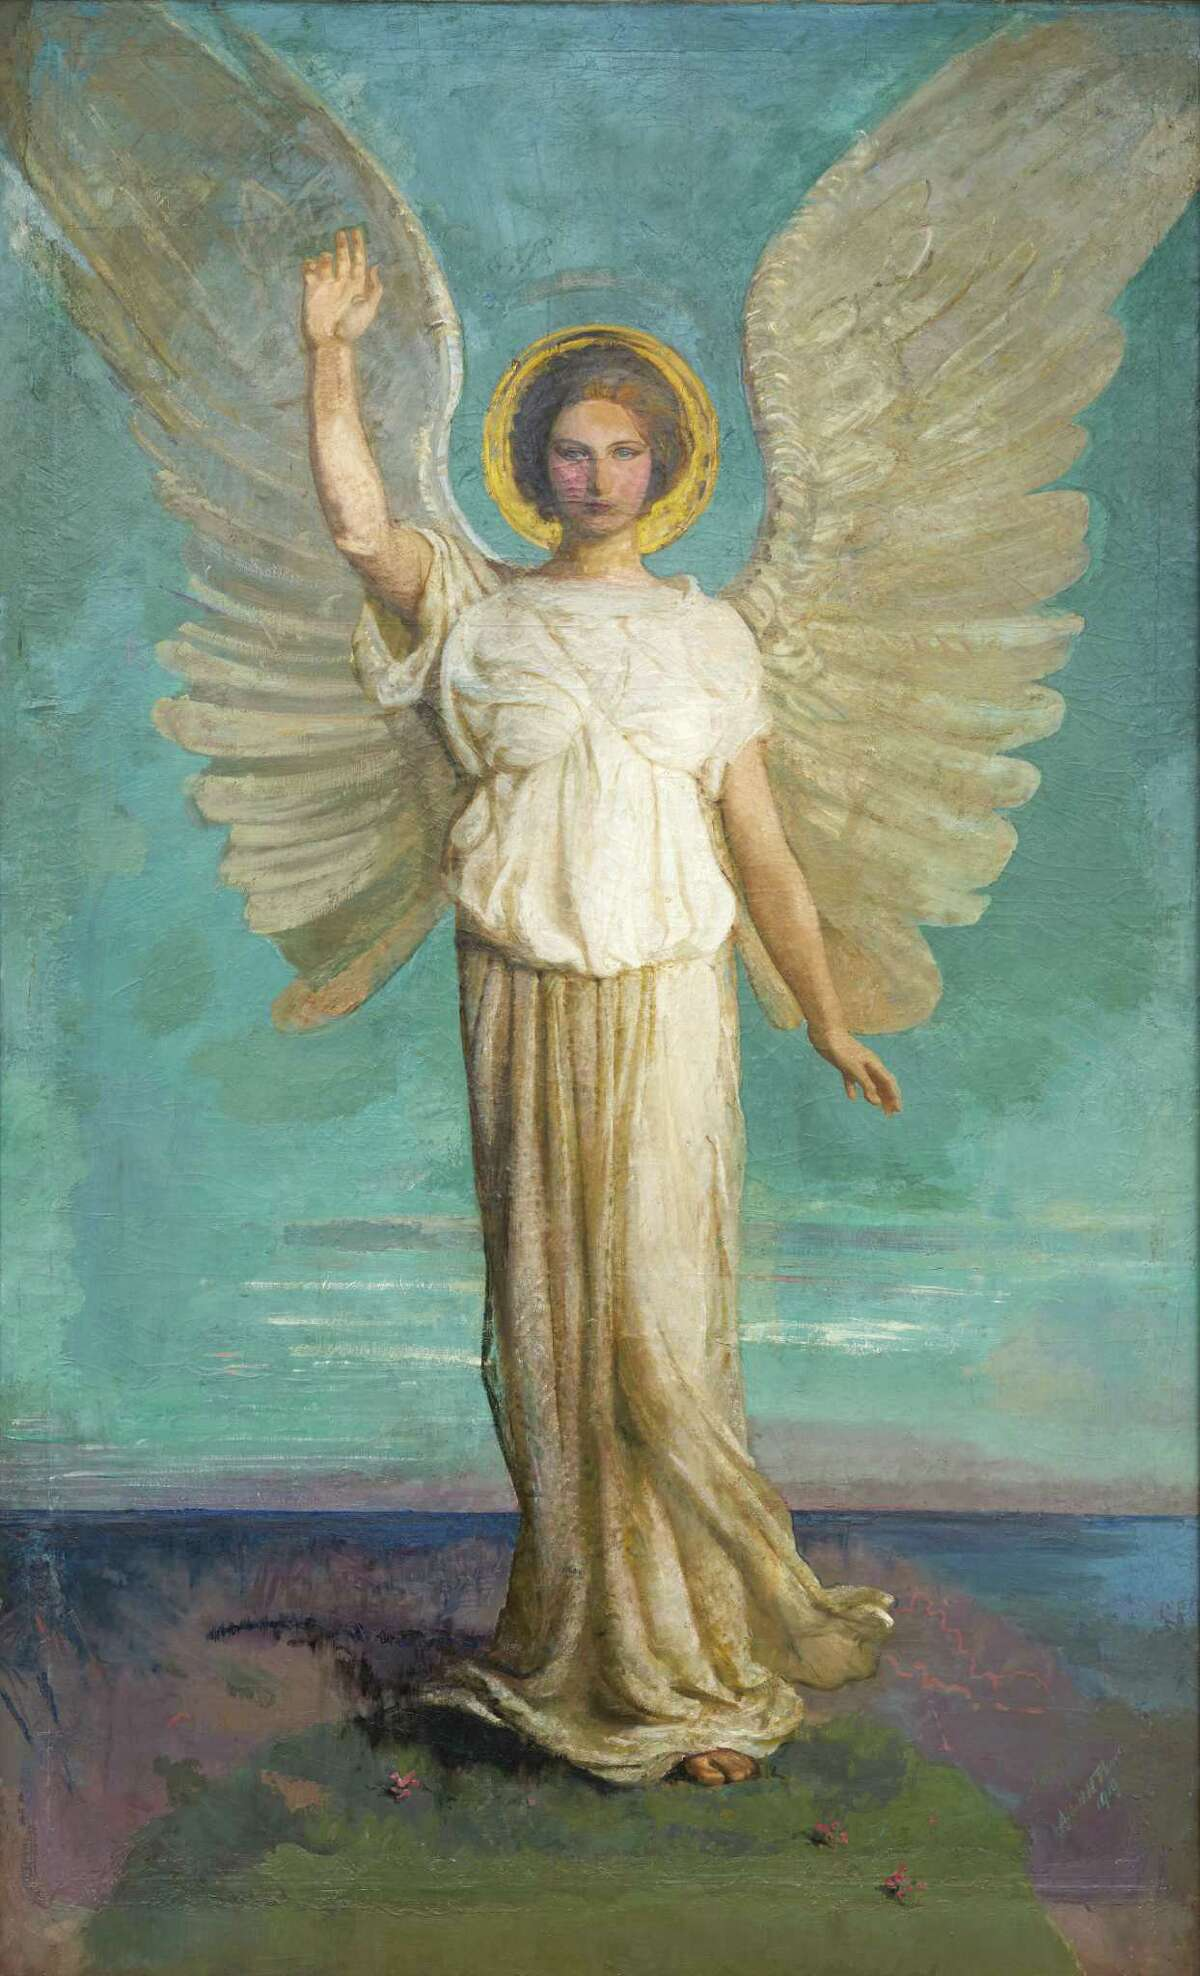 Abbott Handerson Thayer, Angel of the Dawn, 1919, oil on canvas. St. Anselm Abbey School, Washington D.C. Gift of Mrs. Charles Plunket. (Courtesy Williams College Museum of Art)